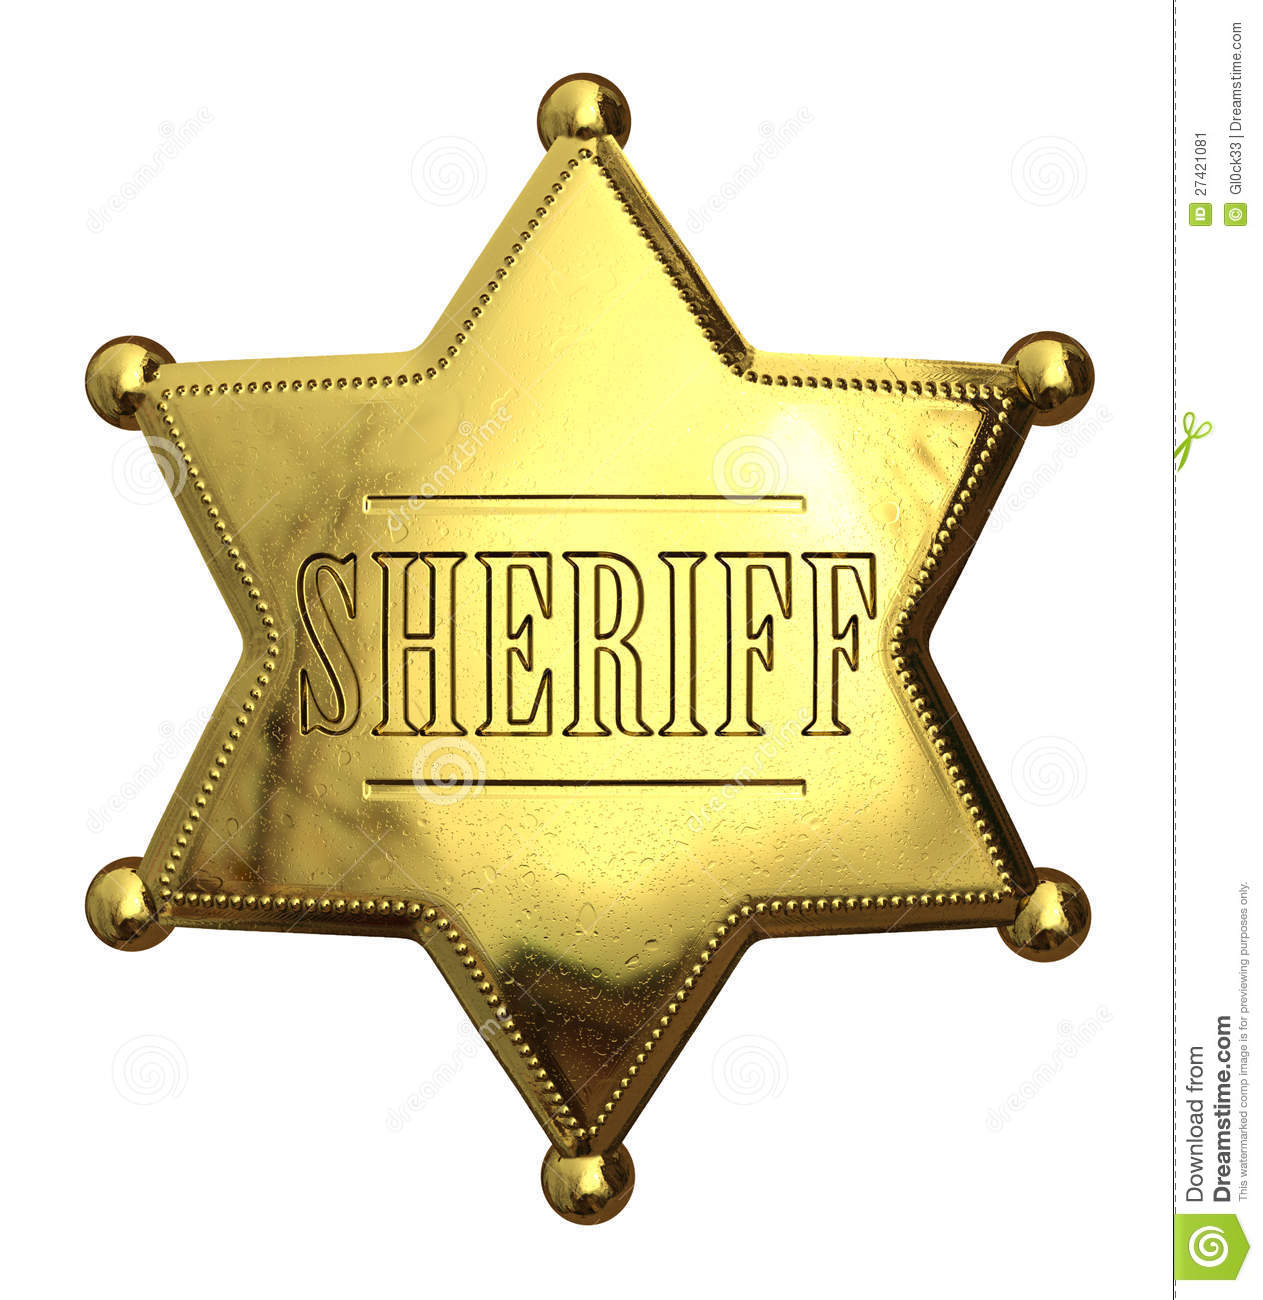 More similar stock images of ` Golden sheriff s badge `